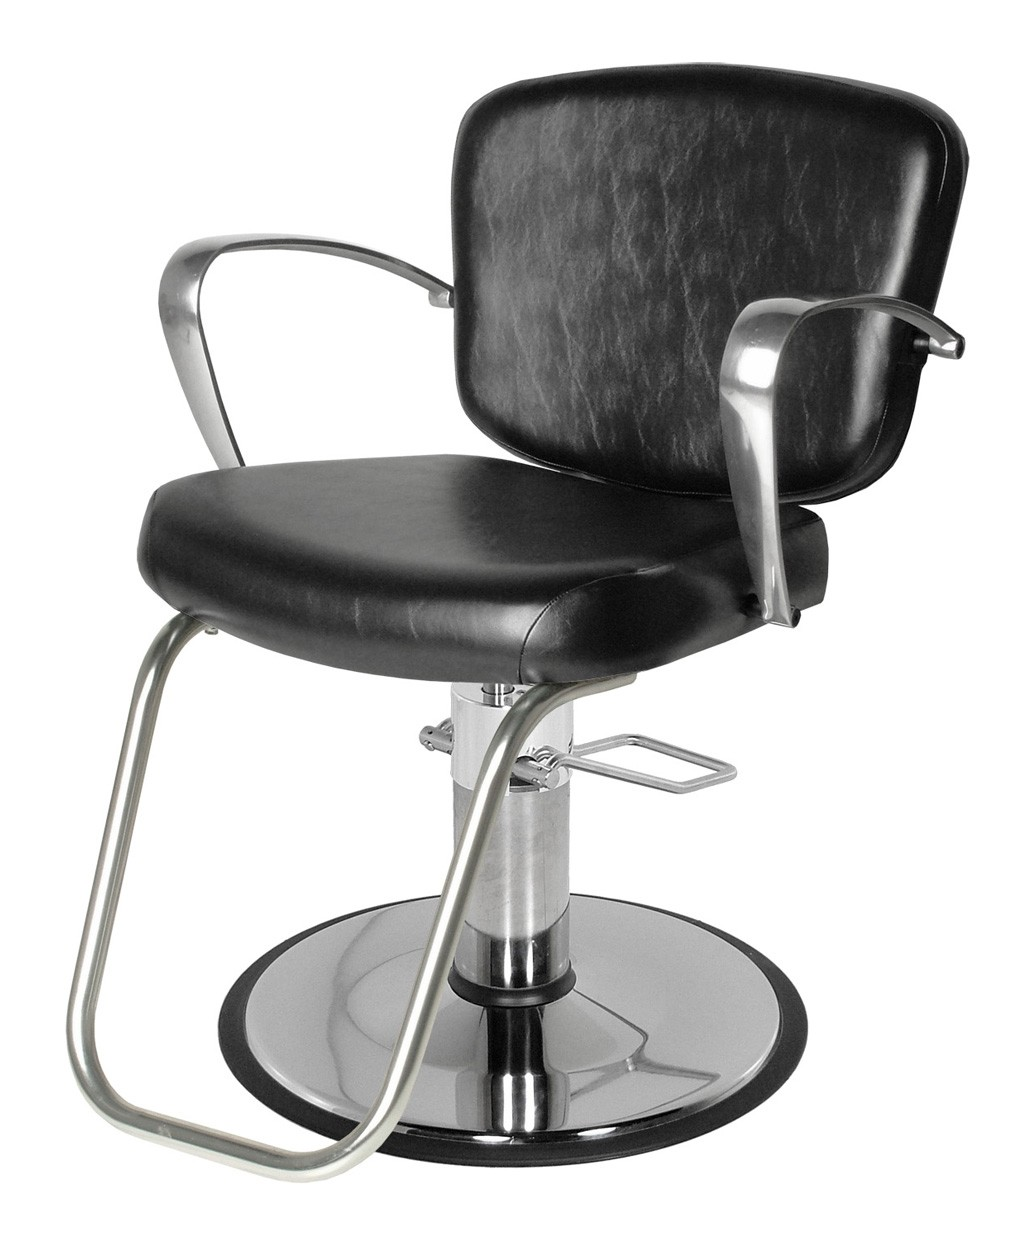 8300 Milano Styling Chair with Standard Base